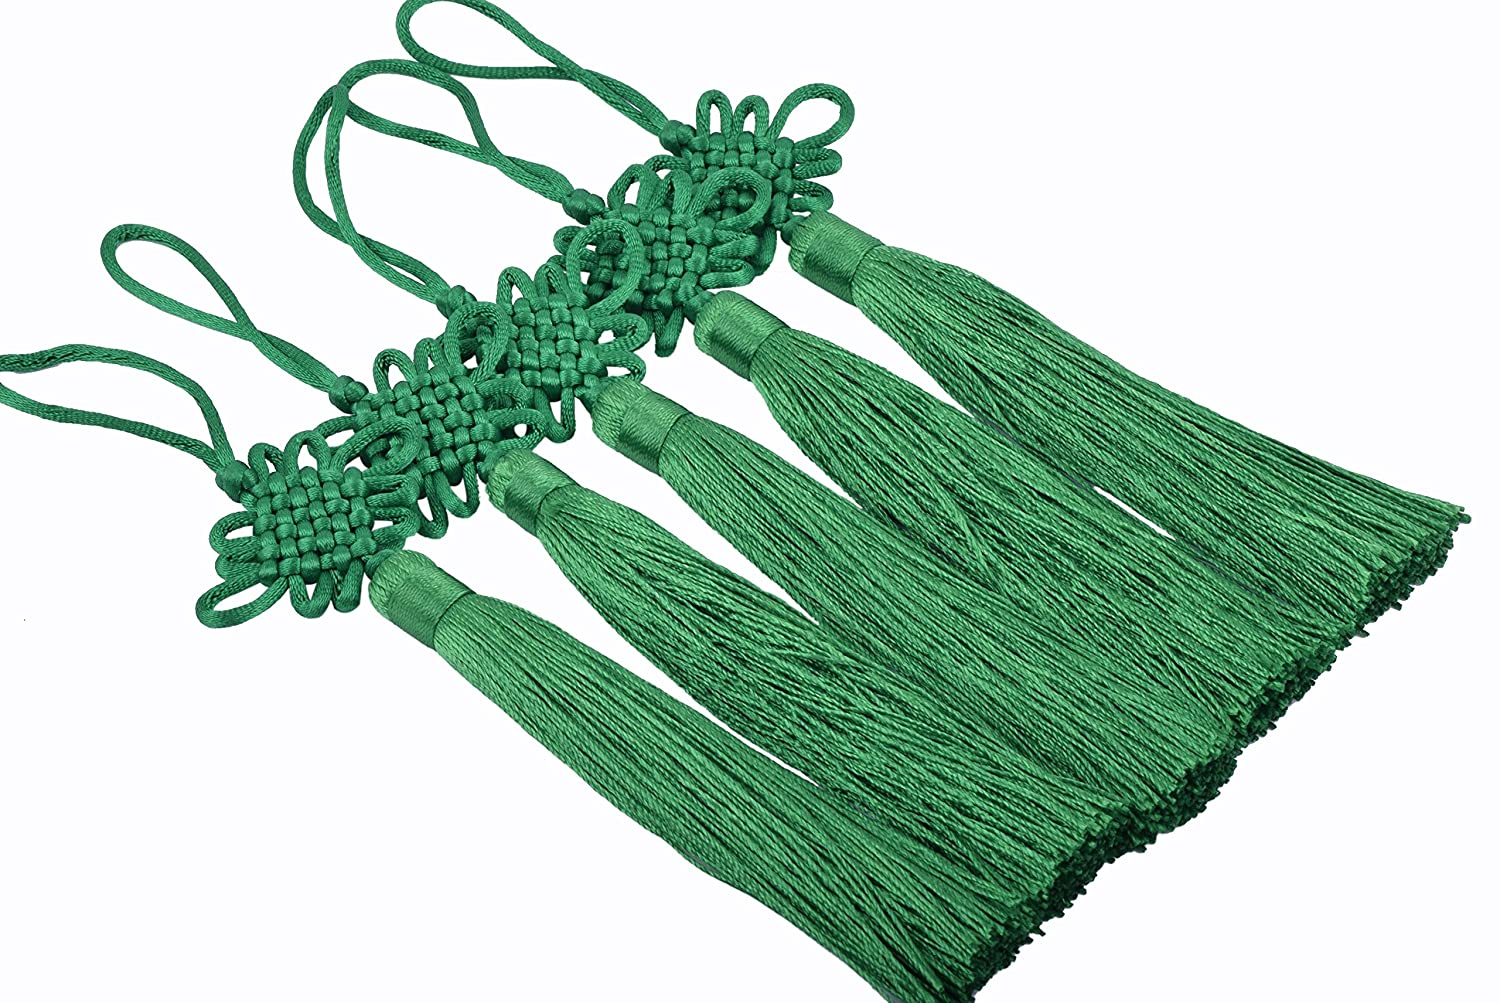 KONMAY 10pcs Handmade Silky Large Size(6.4'') Tassels with Satin Silk Made Chinese Knots (Kelly Green) KMTS003KGR